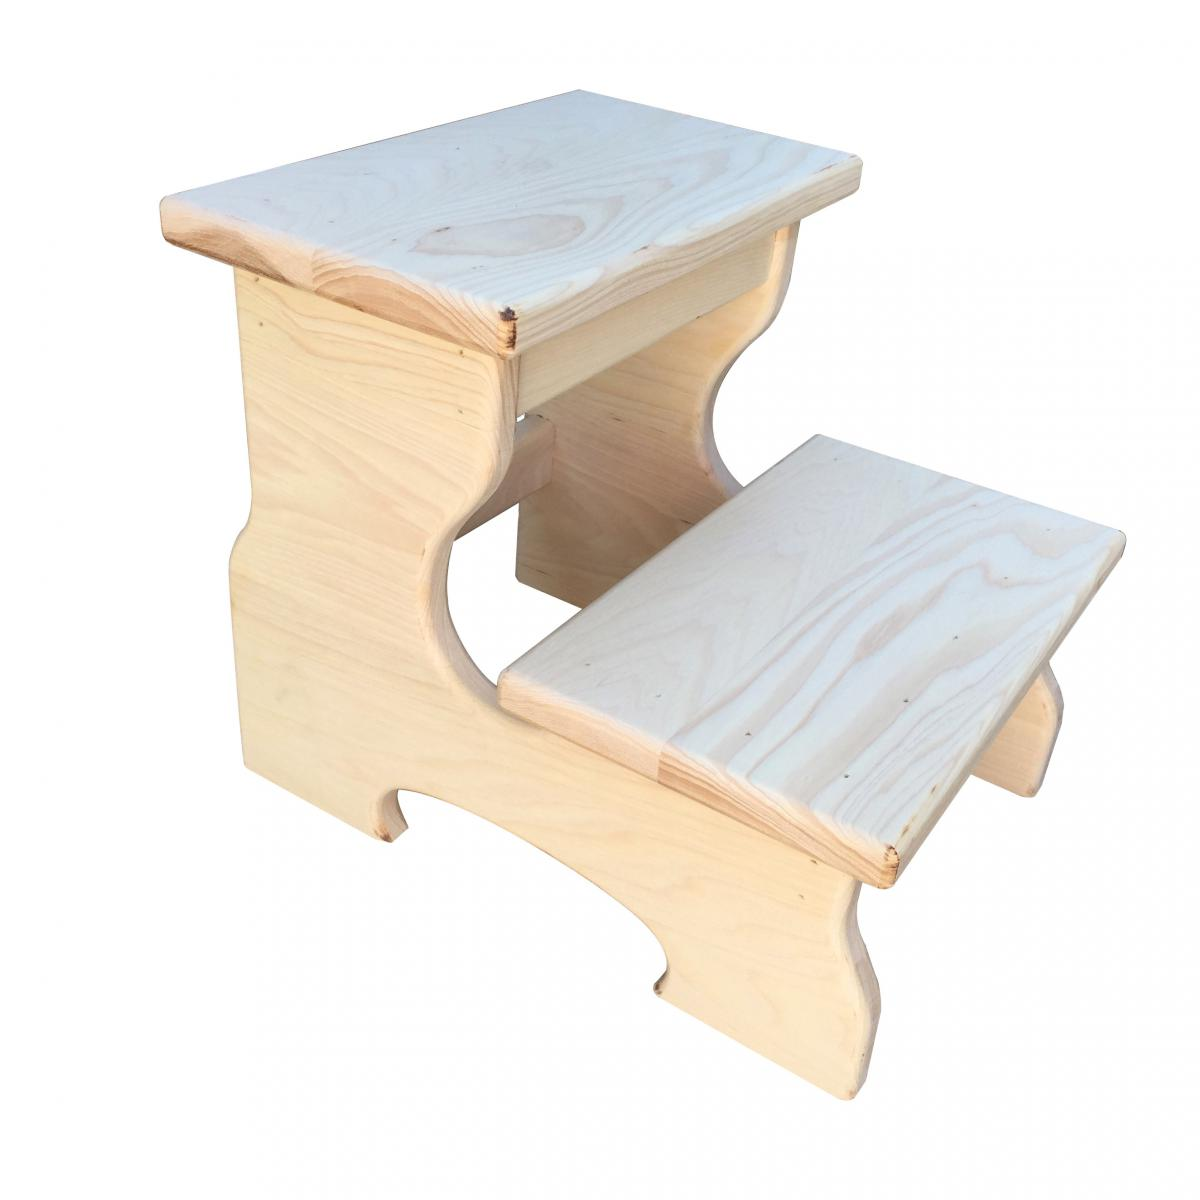 Wood Step Stool For Adults Home Improvement And Interior